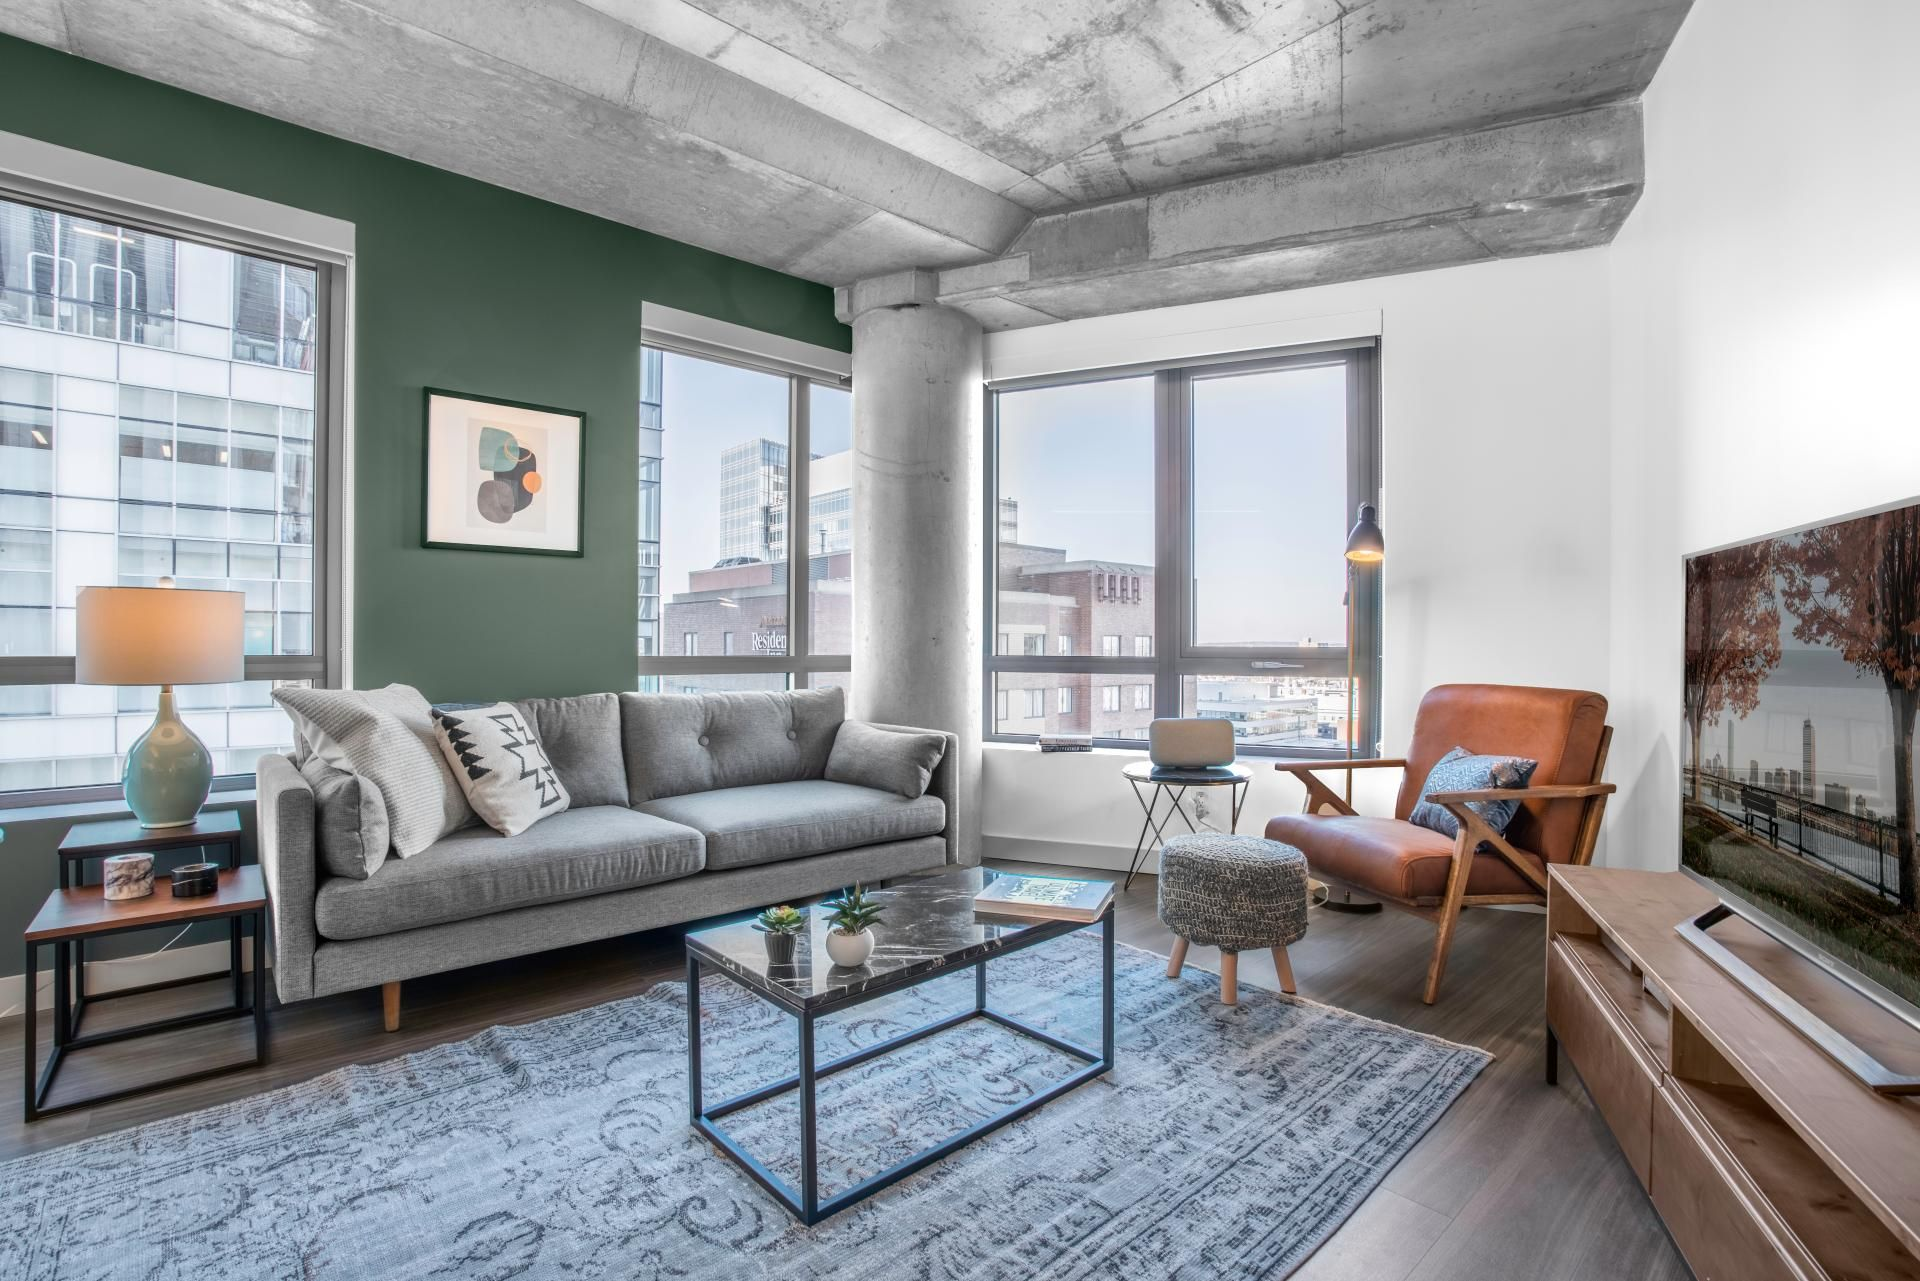 Bright Concrete Living 1bedroom Apartment Fully Furnished Apartment In Kendall Square Bost Chic Apartment Decor Elegant Apartment Decor Dyi Apartment Decor